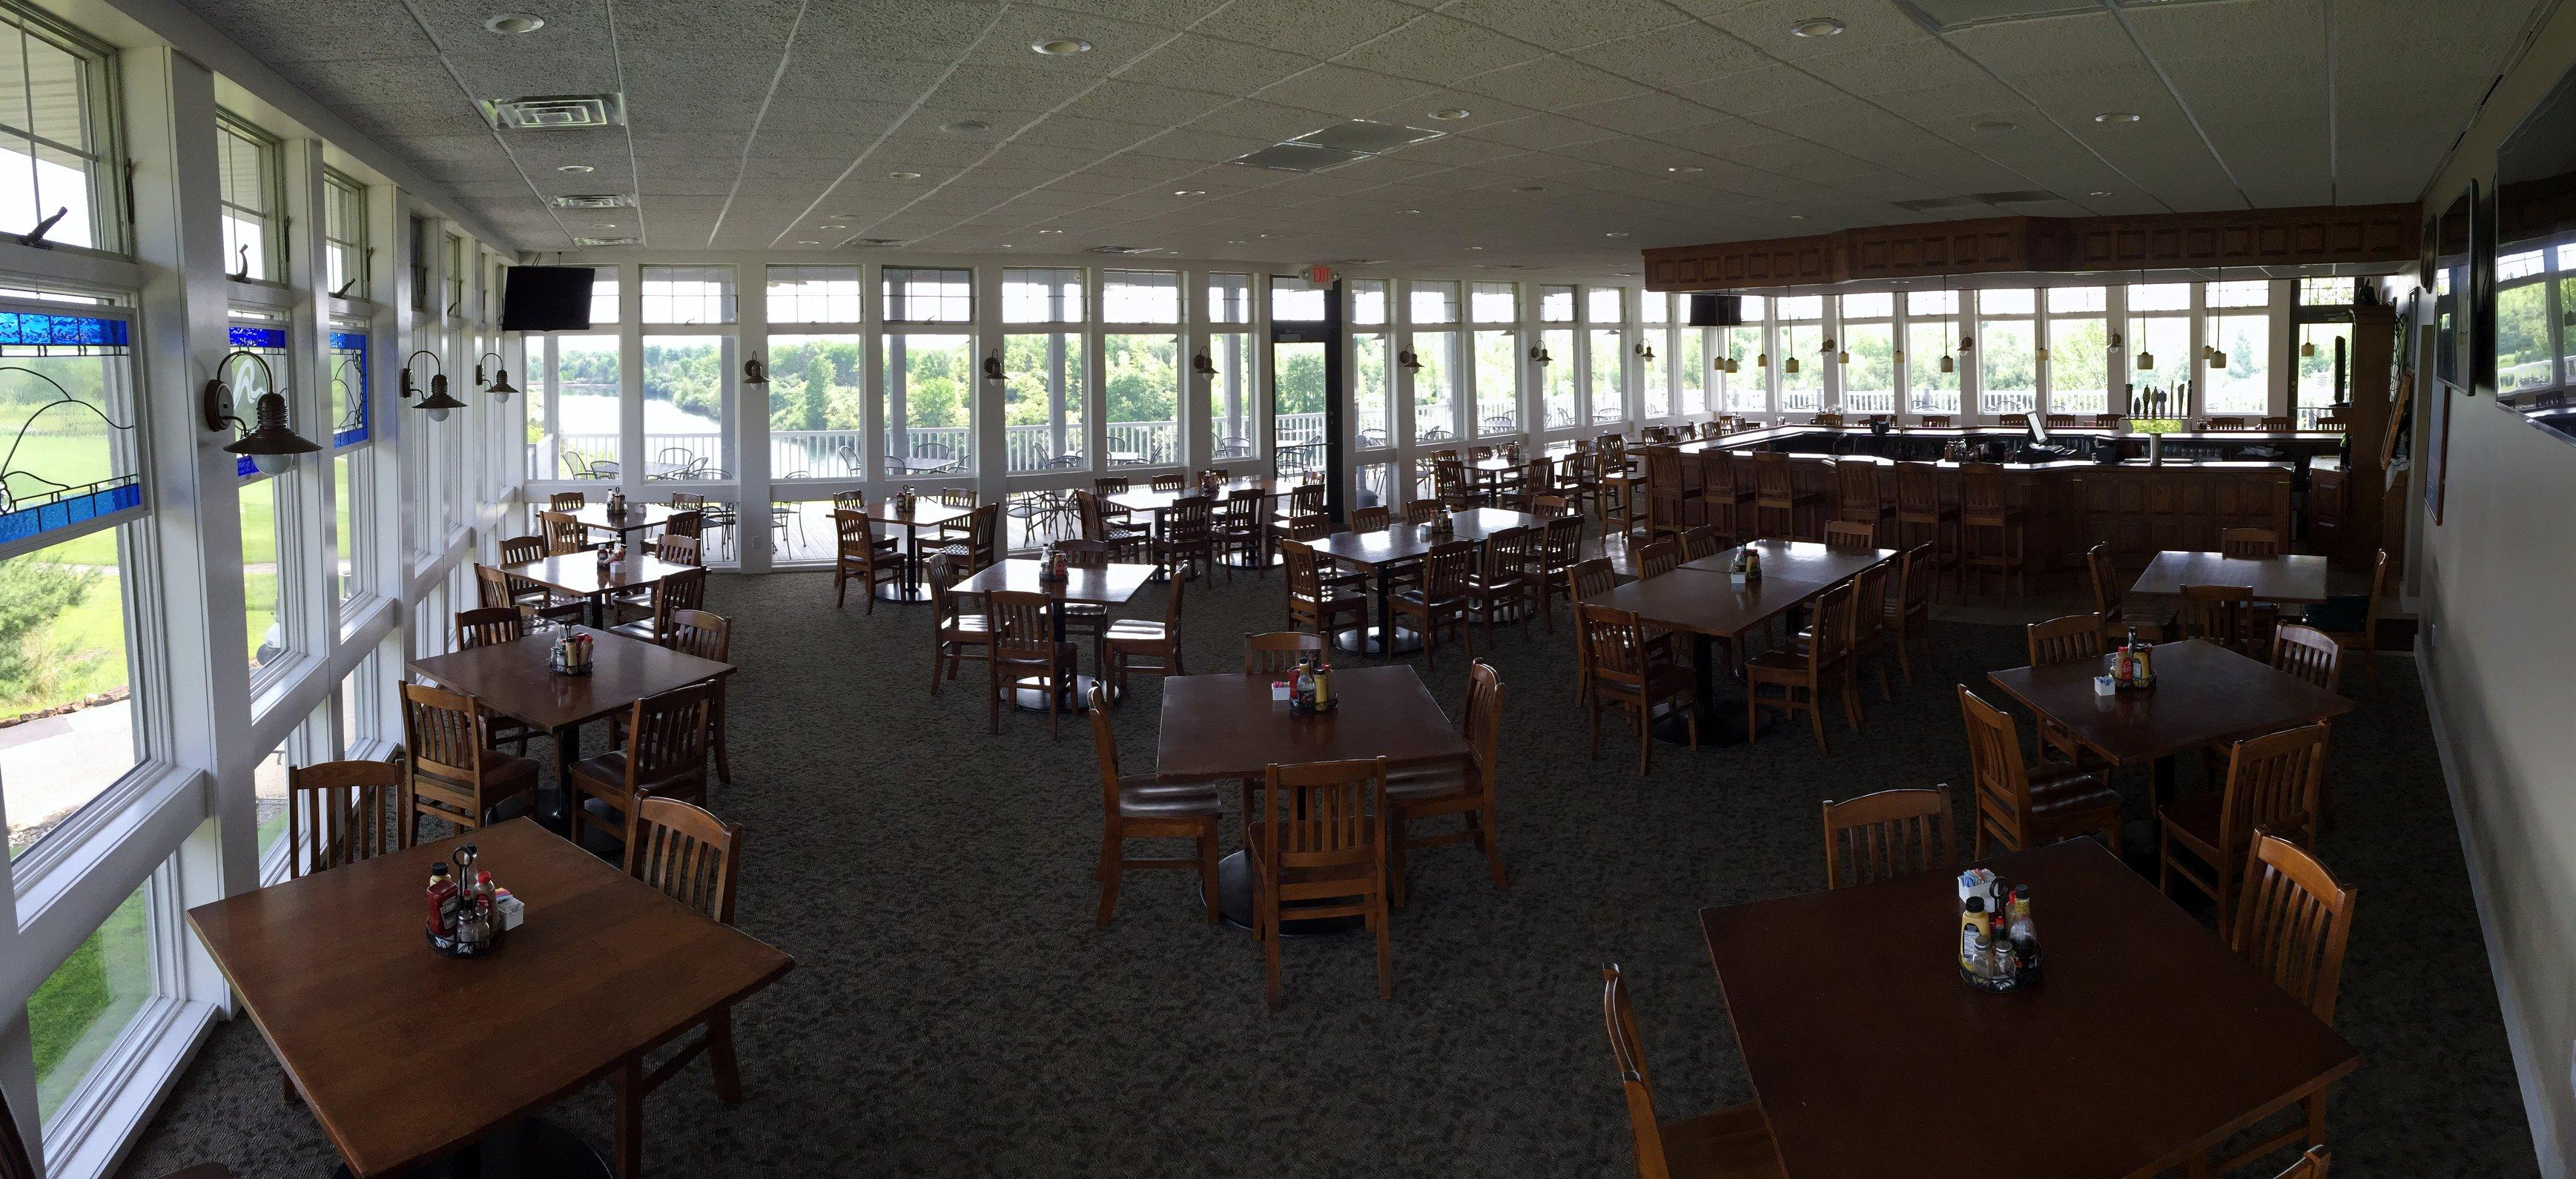 another_round_view_to_9 dining porch rsz_1another_round_2015_view_from_patio_to_lake rsz_another_round_2015_view_from_entrance